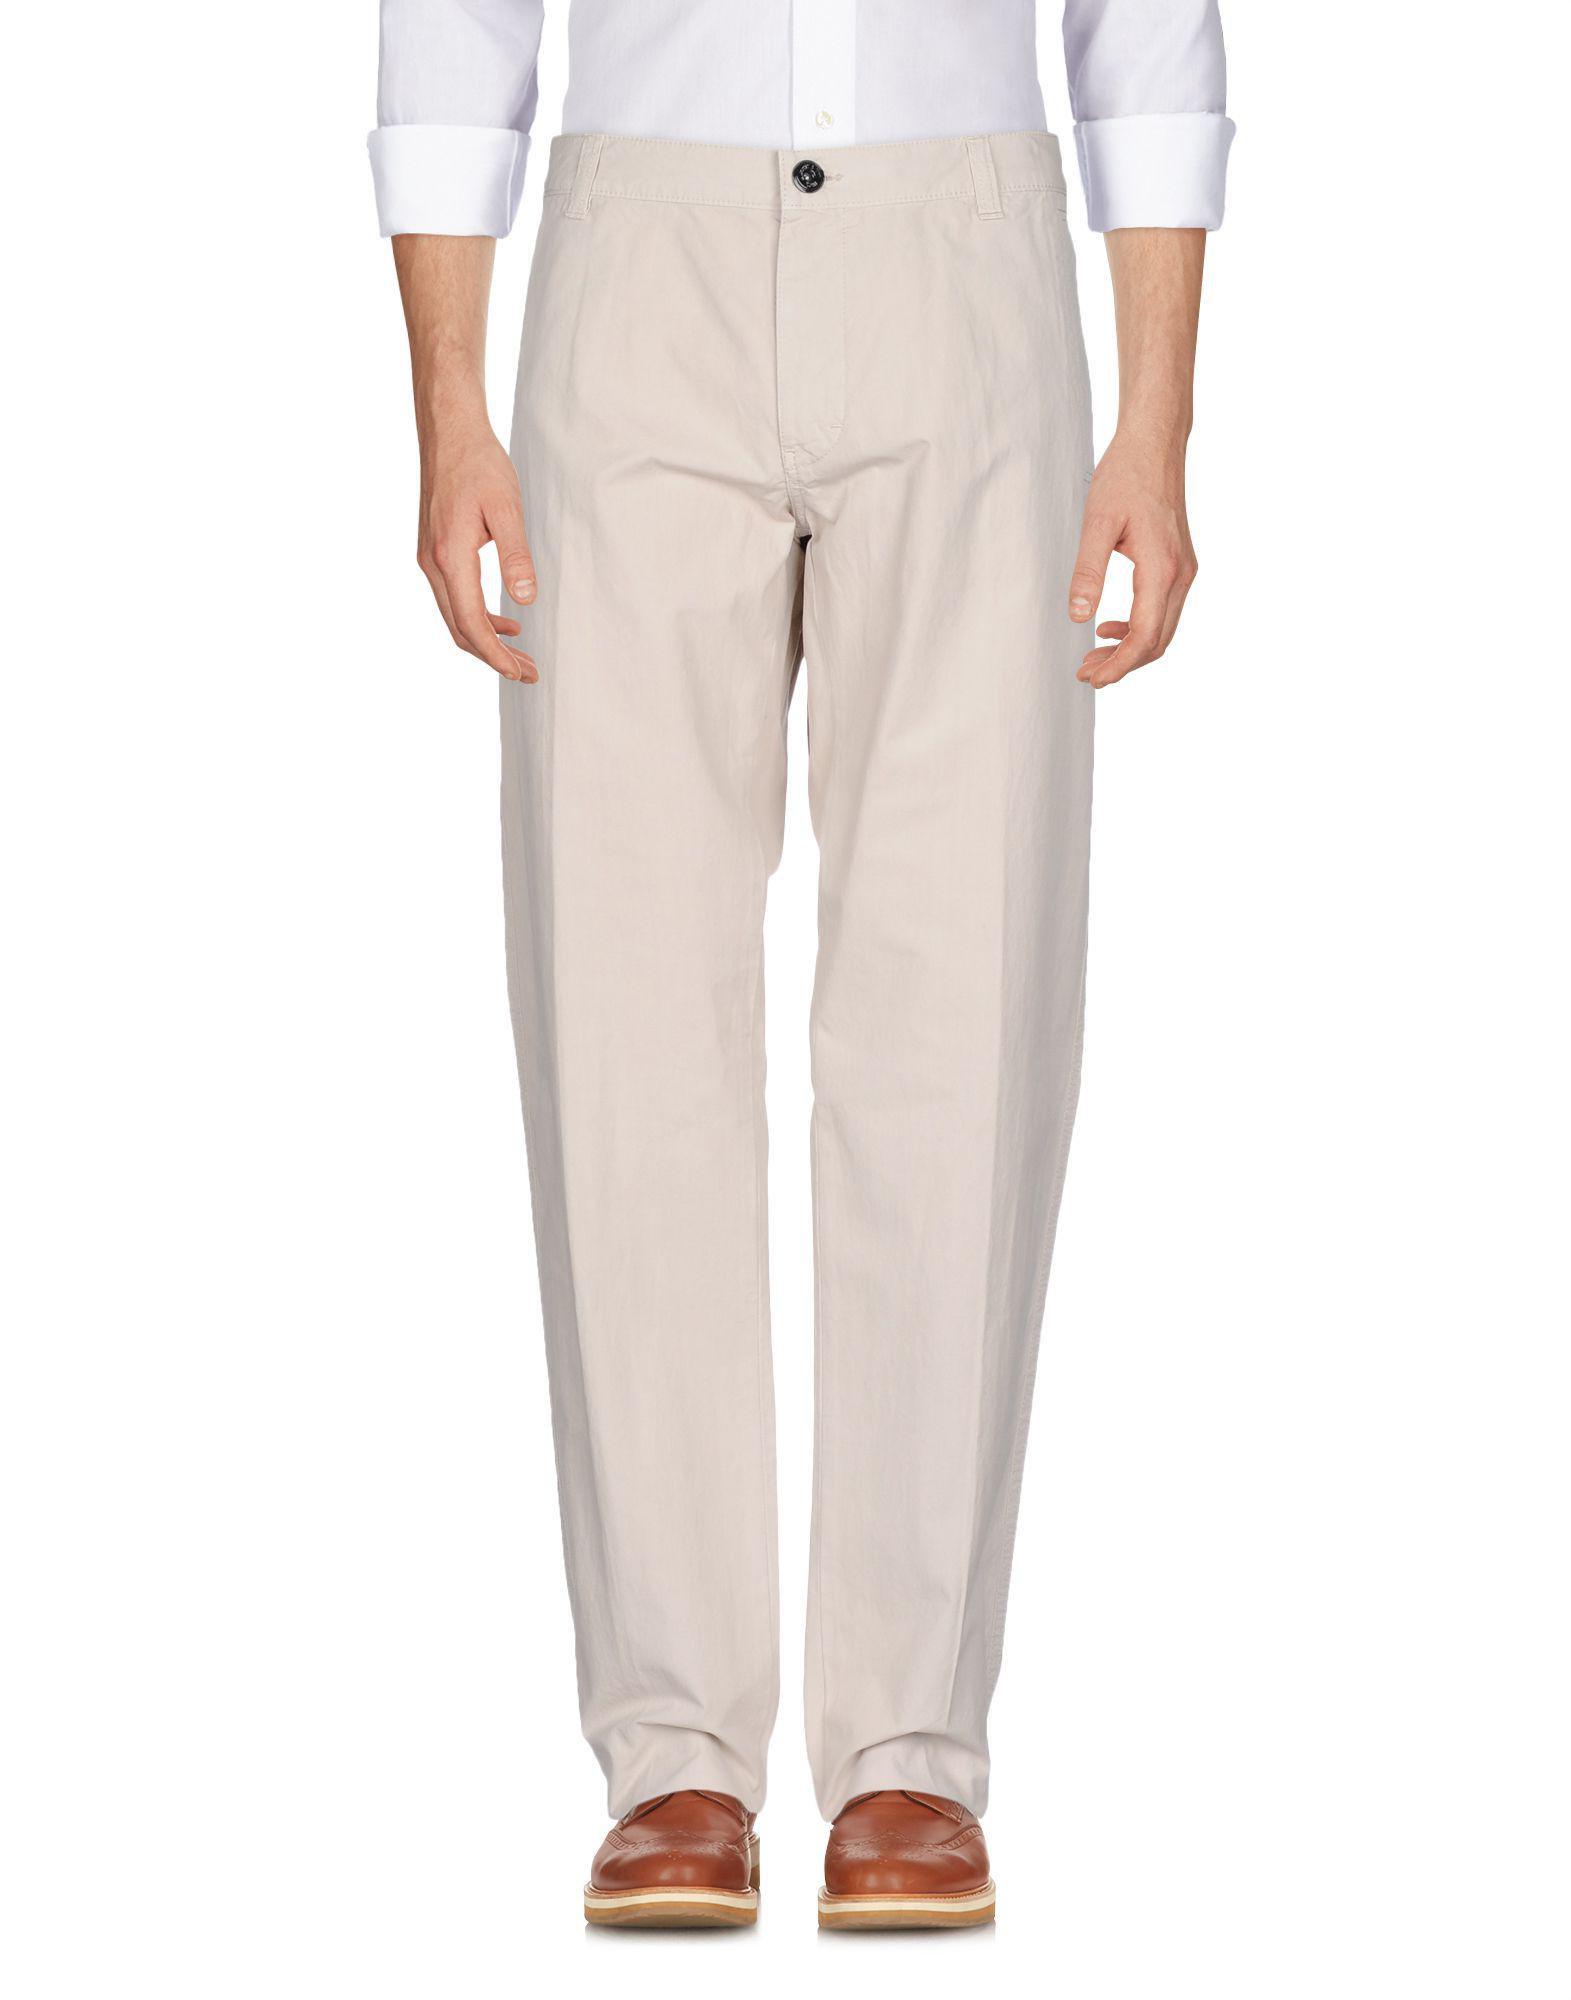 TROUSERS - Casual trousers Murphy & Nye